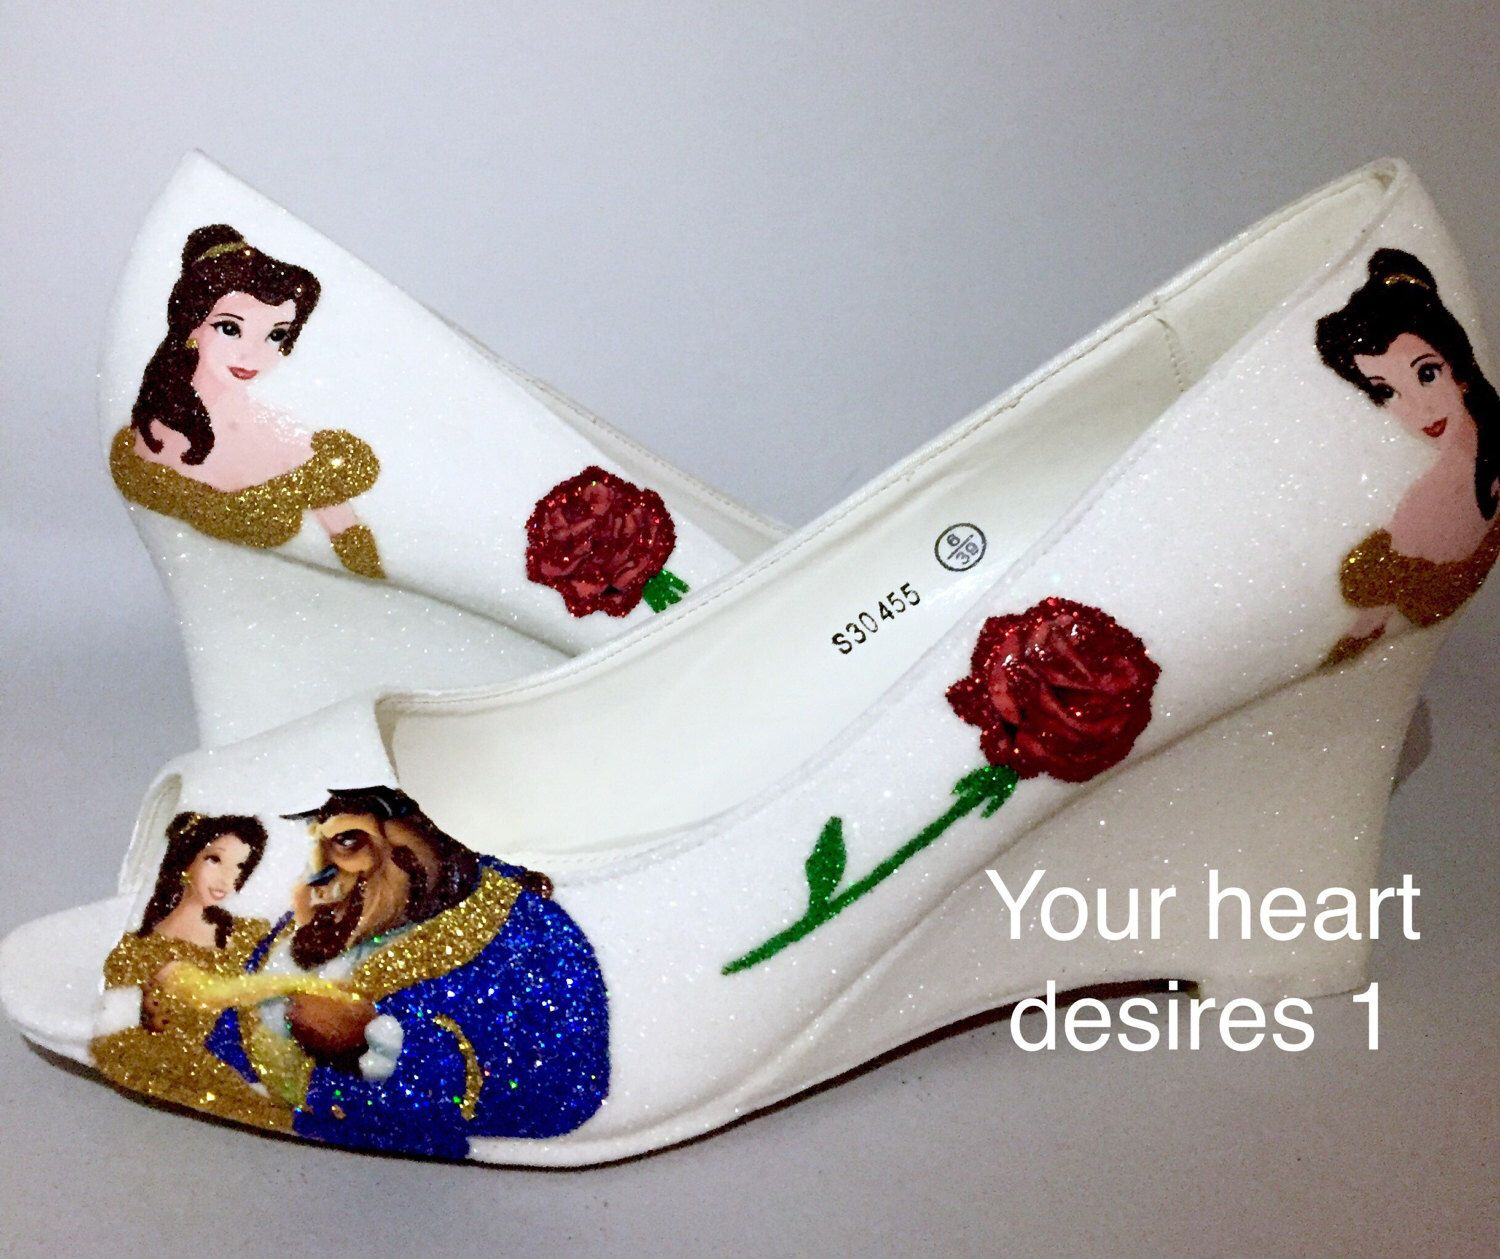 Beauty and the beast pastel Disney wedding prom cosplay shoes by yourheartdesires1 on Etsy https://www.etsy.com/uk/listing/468374646/beauty-and-the-beast-pastel-disney